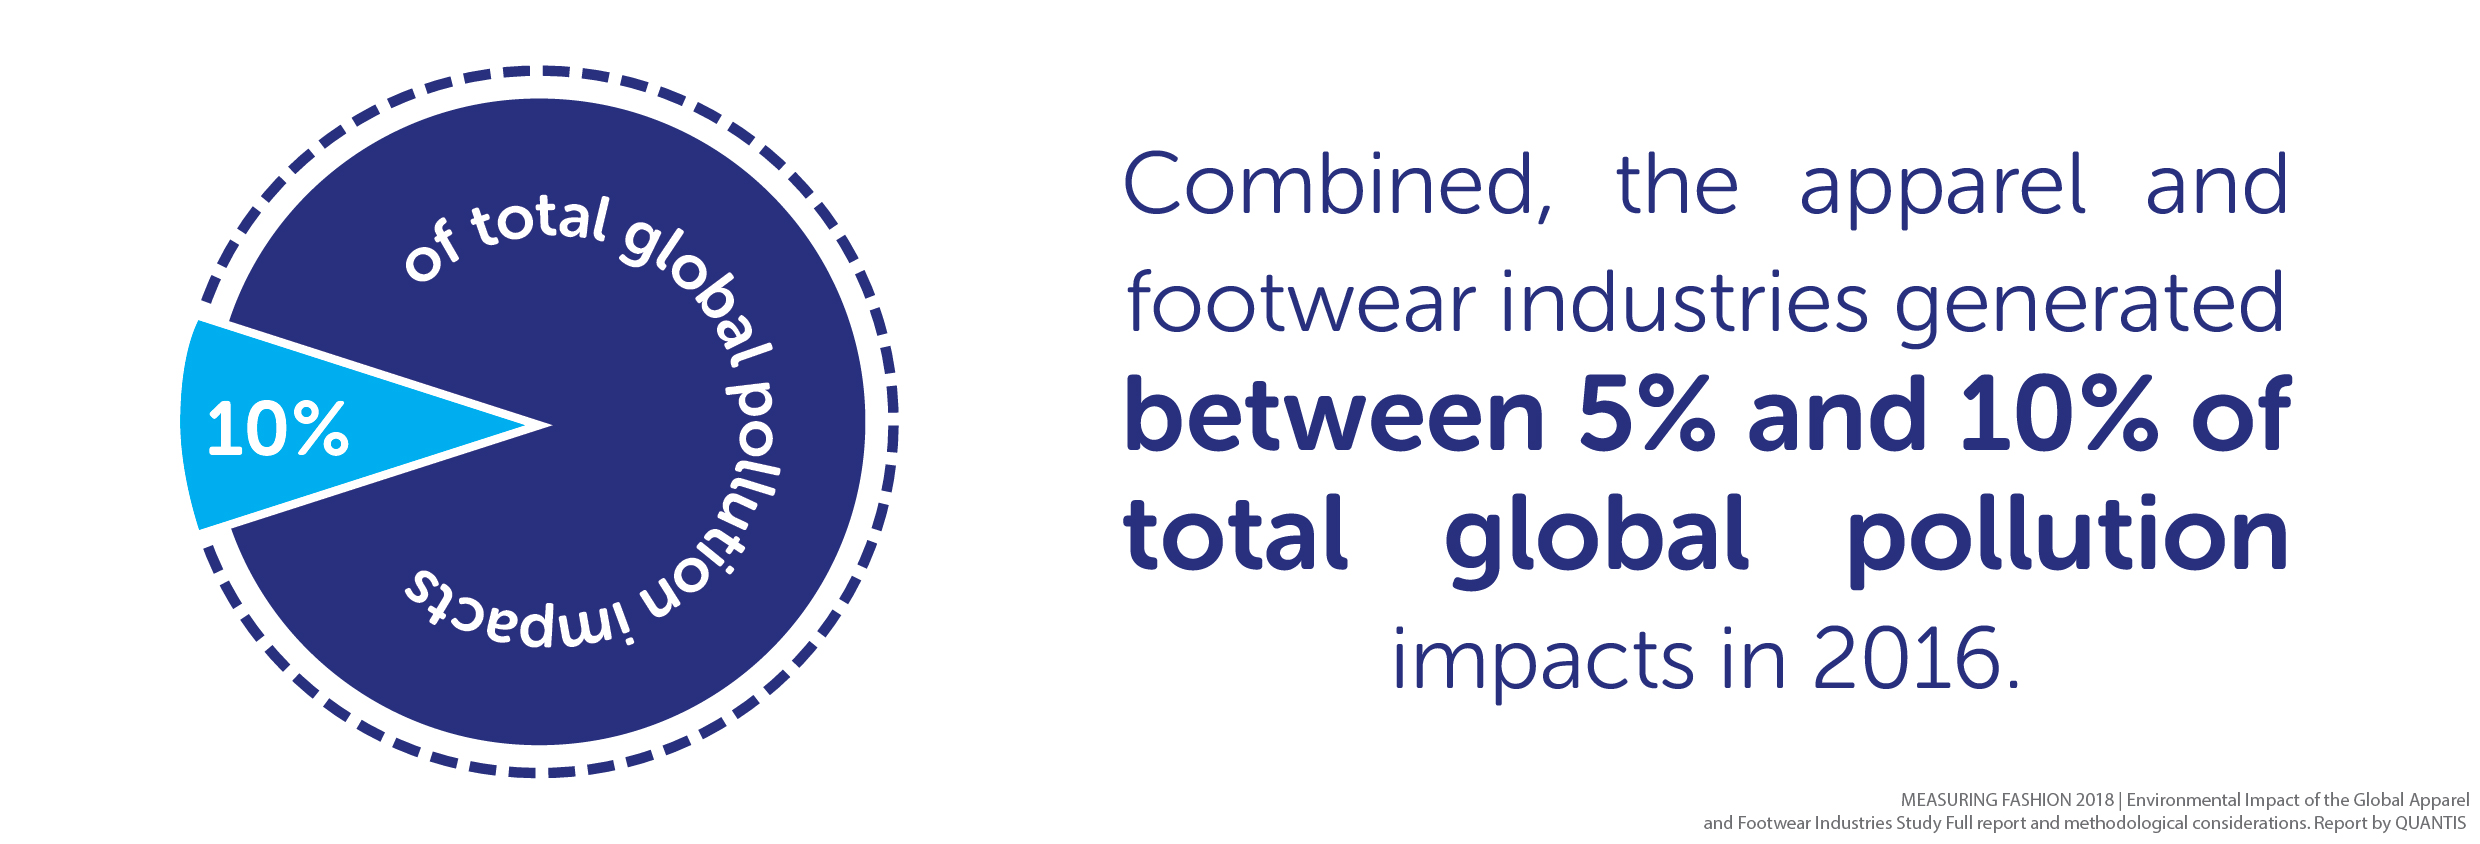 Combined, the apparel and footwear industries generated between 5% and 10% of total global pollution impacts in 2016. According to MEASURING FASHION 2018 | Environmental Impact of the Global Apparel and Footwear Industries Study Full report and methodological considerations. Report by QUANTIS.